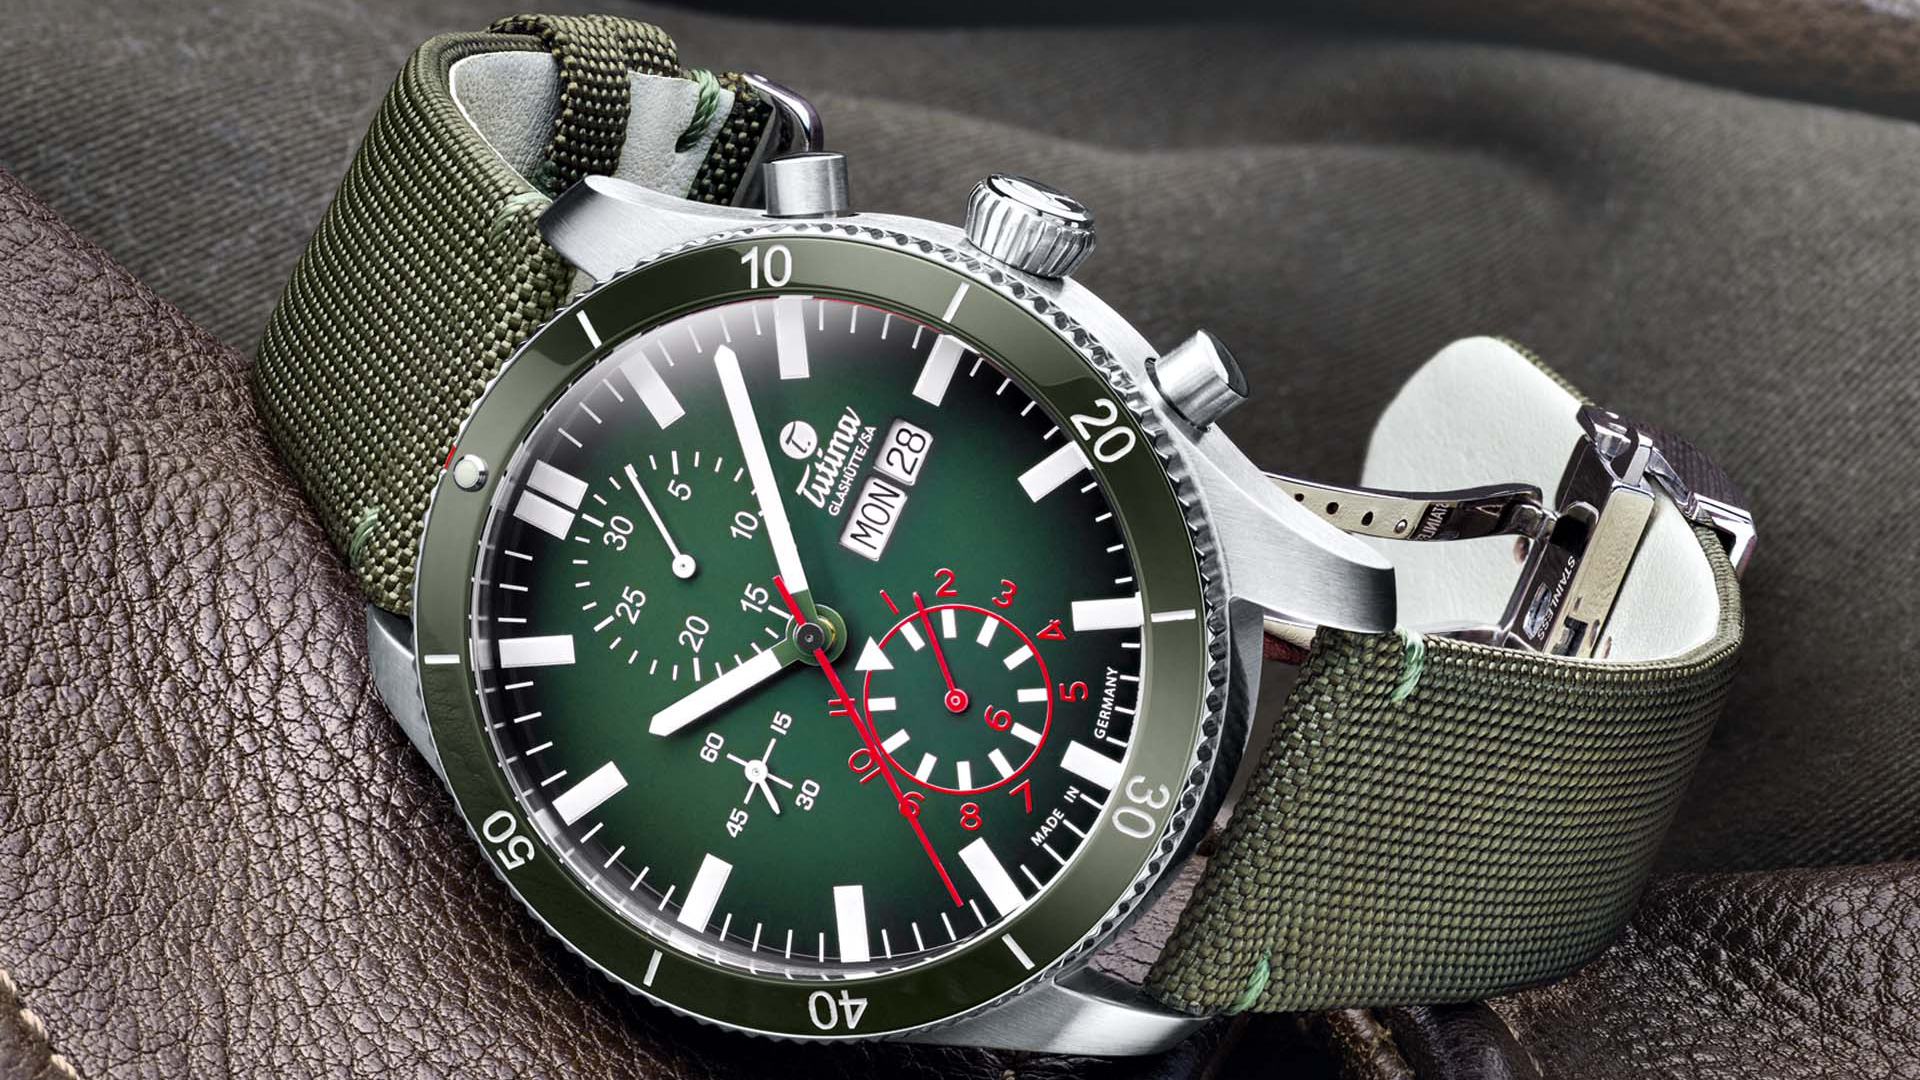 Tutima Grand Flieger Chrono